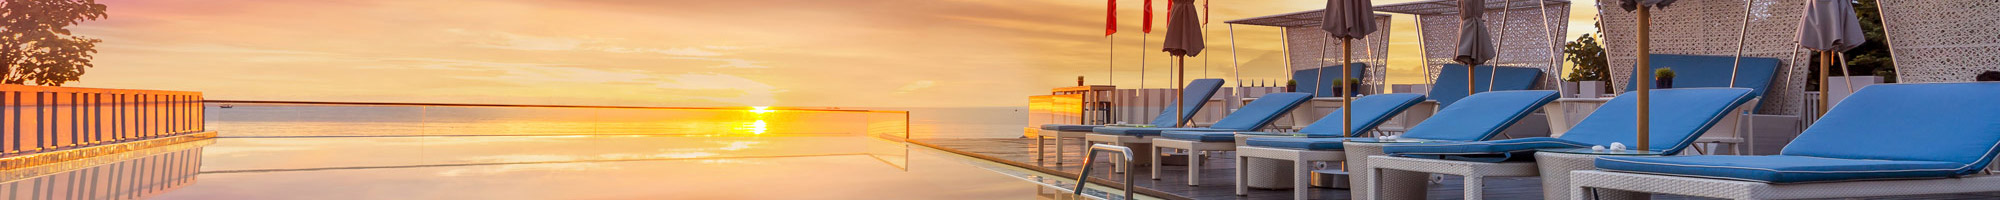 Hoteles de Hilton Hotels & Resorts en Santa Cruz